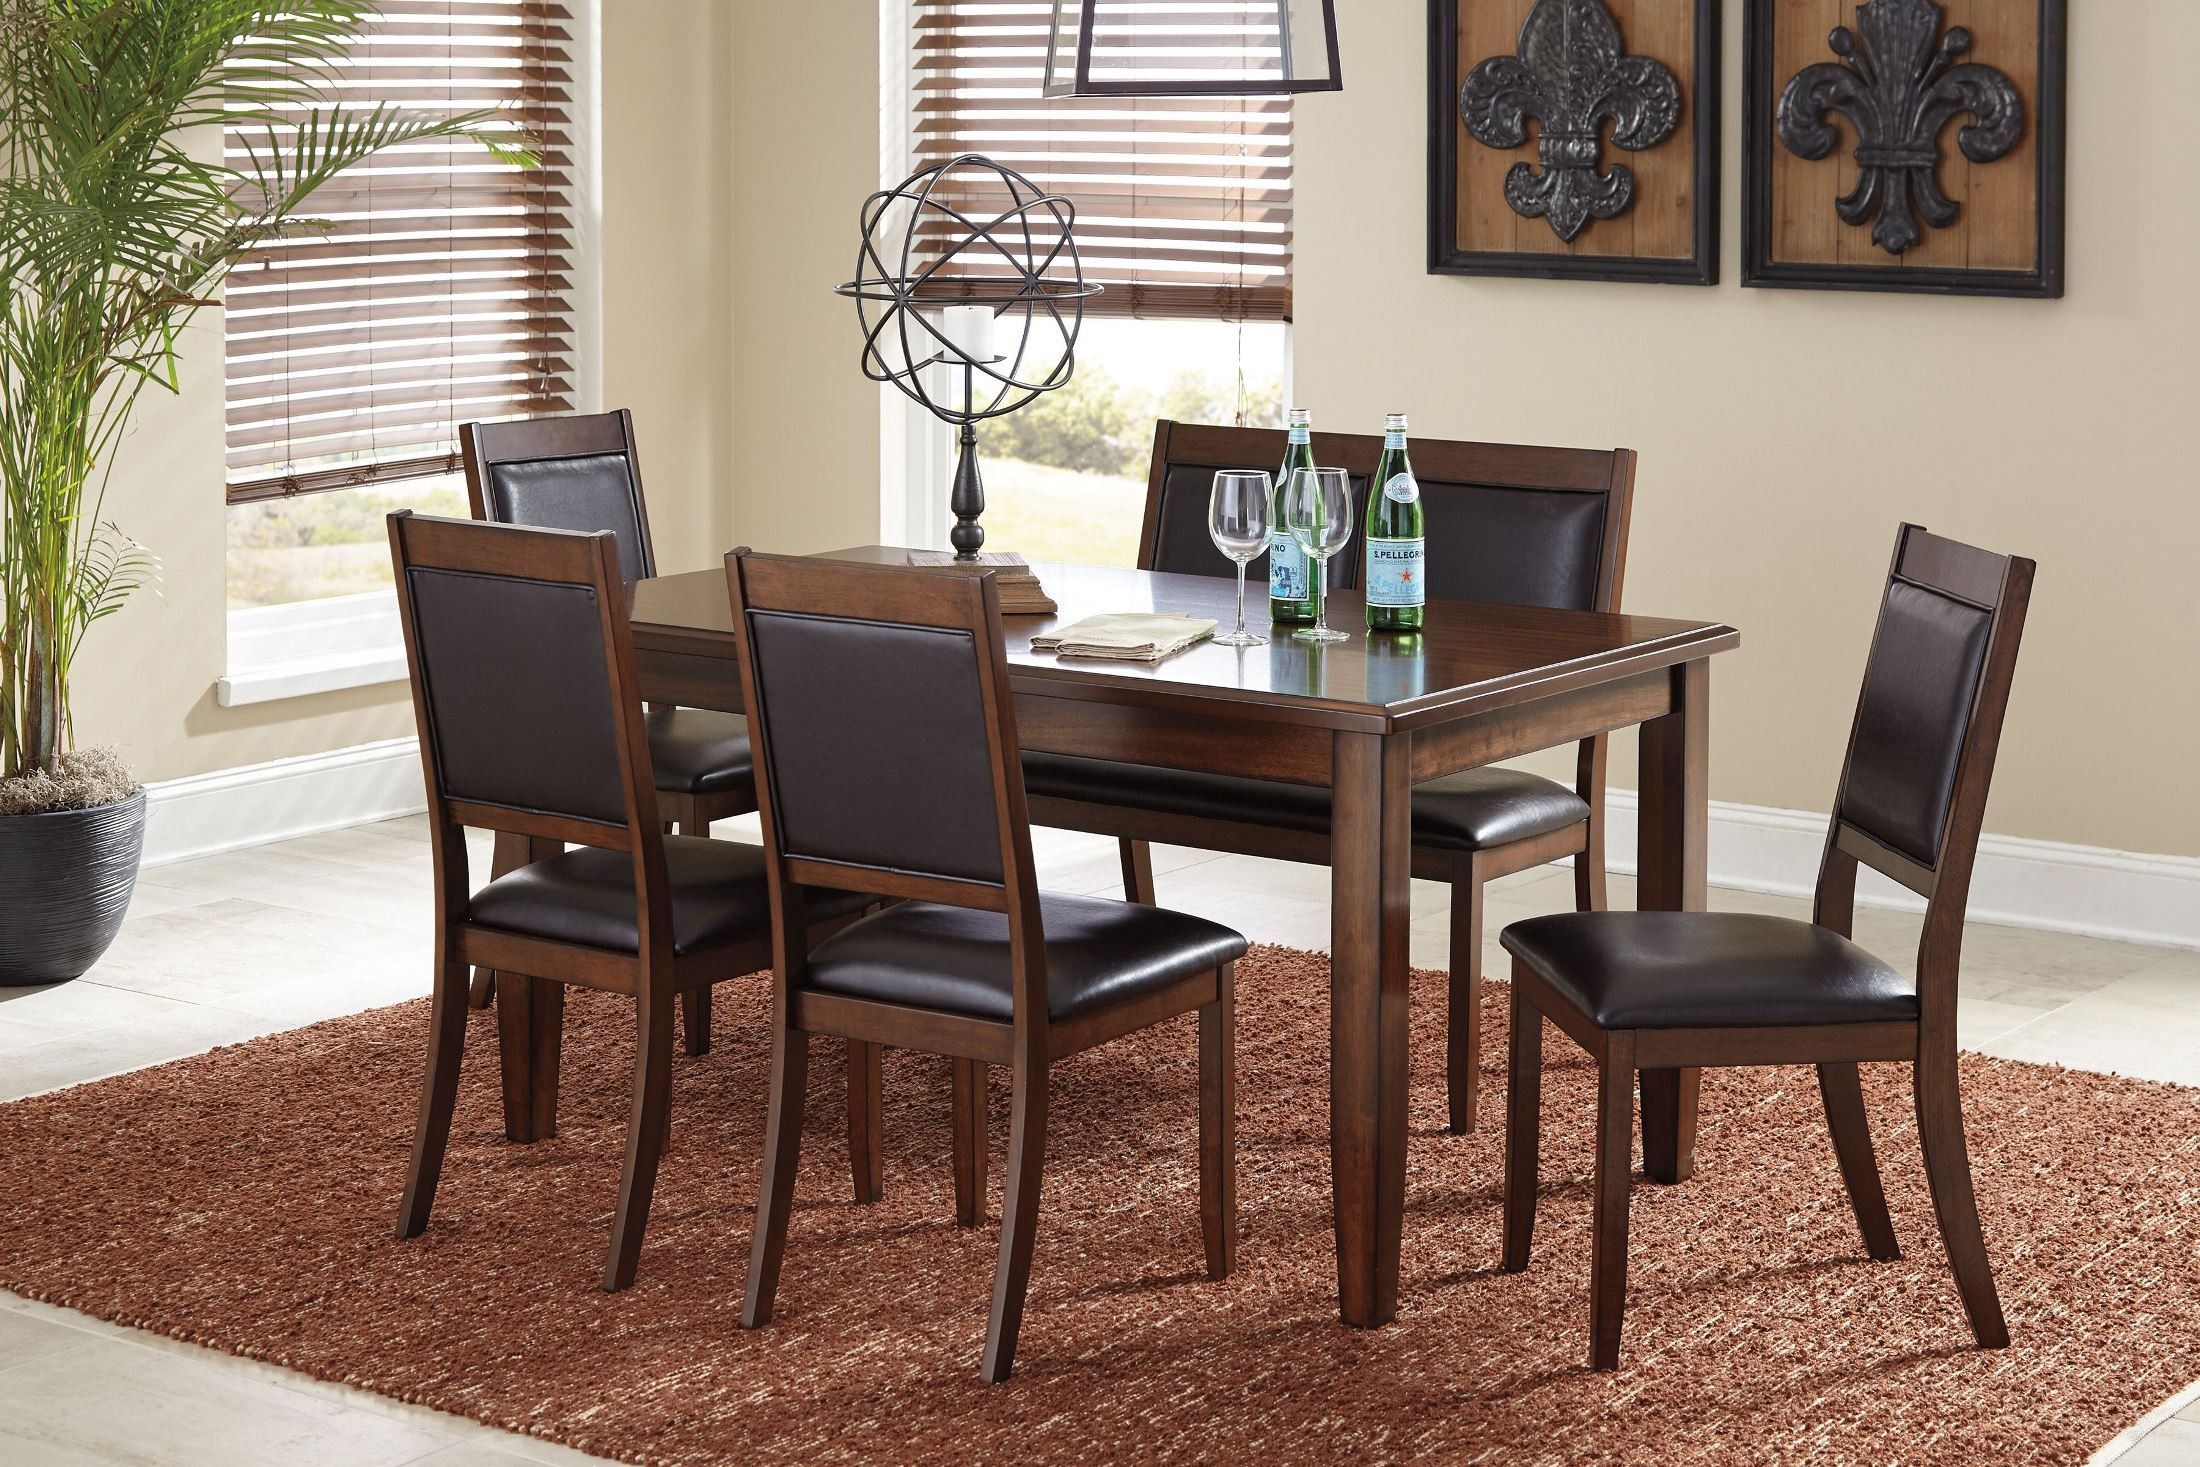 Meredy brown 6 piece dining room set from ashley coleman for Dining room sets for 6